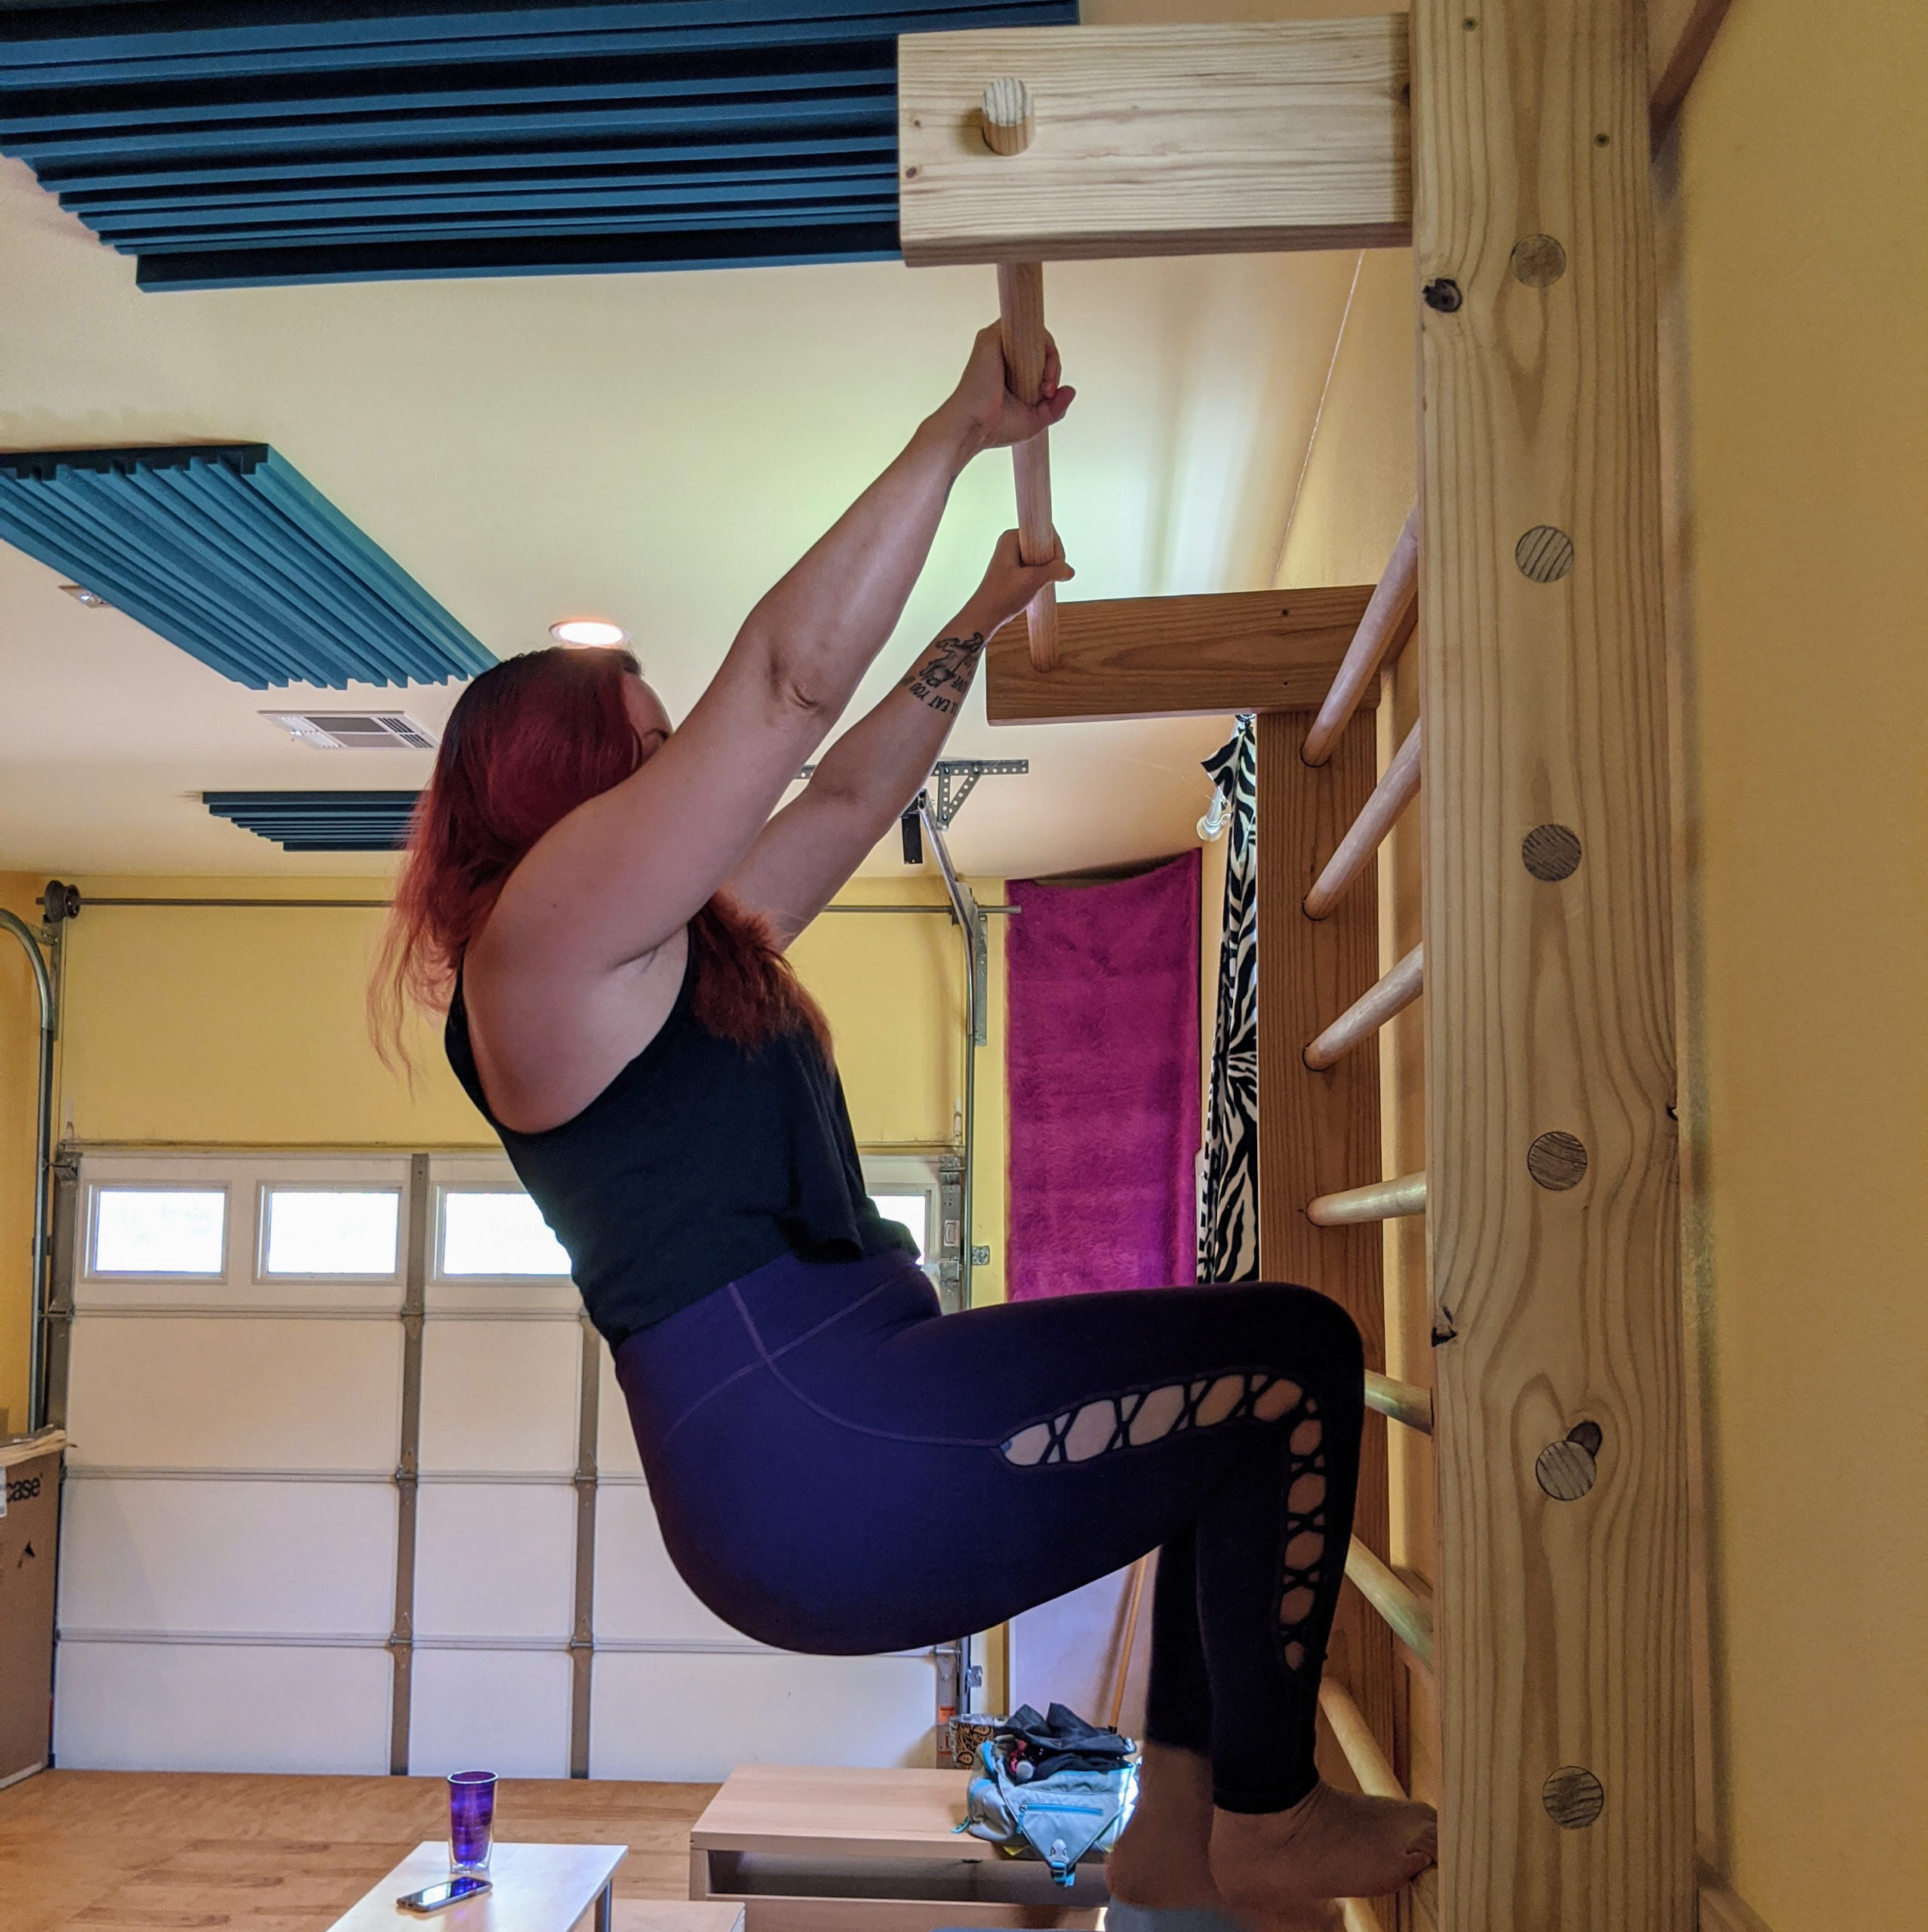 woman doing pull-ups on a set of stall bars in her home gym